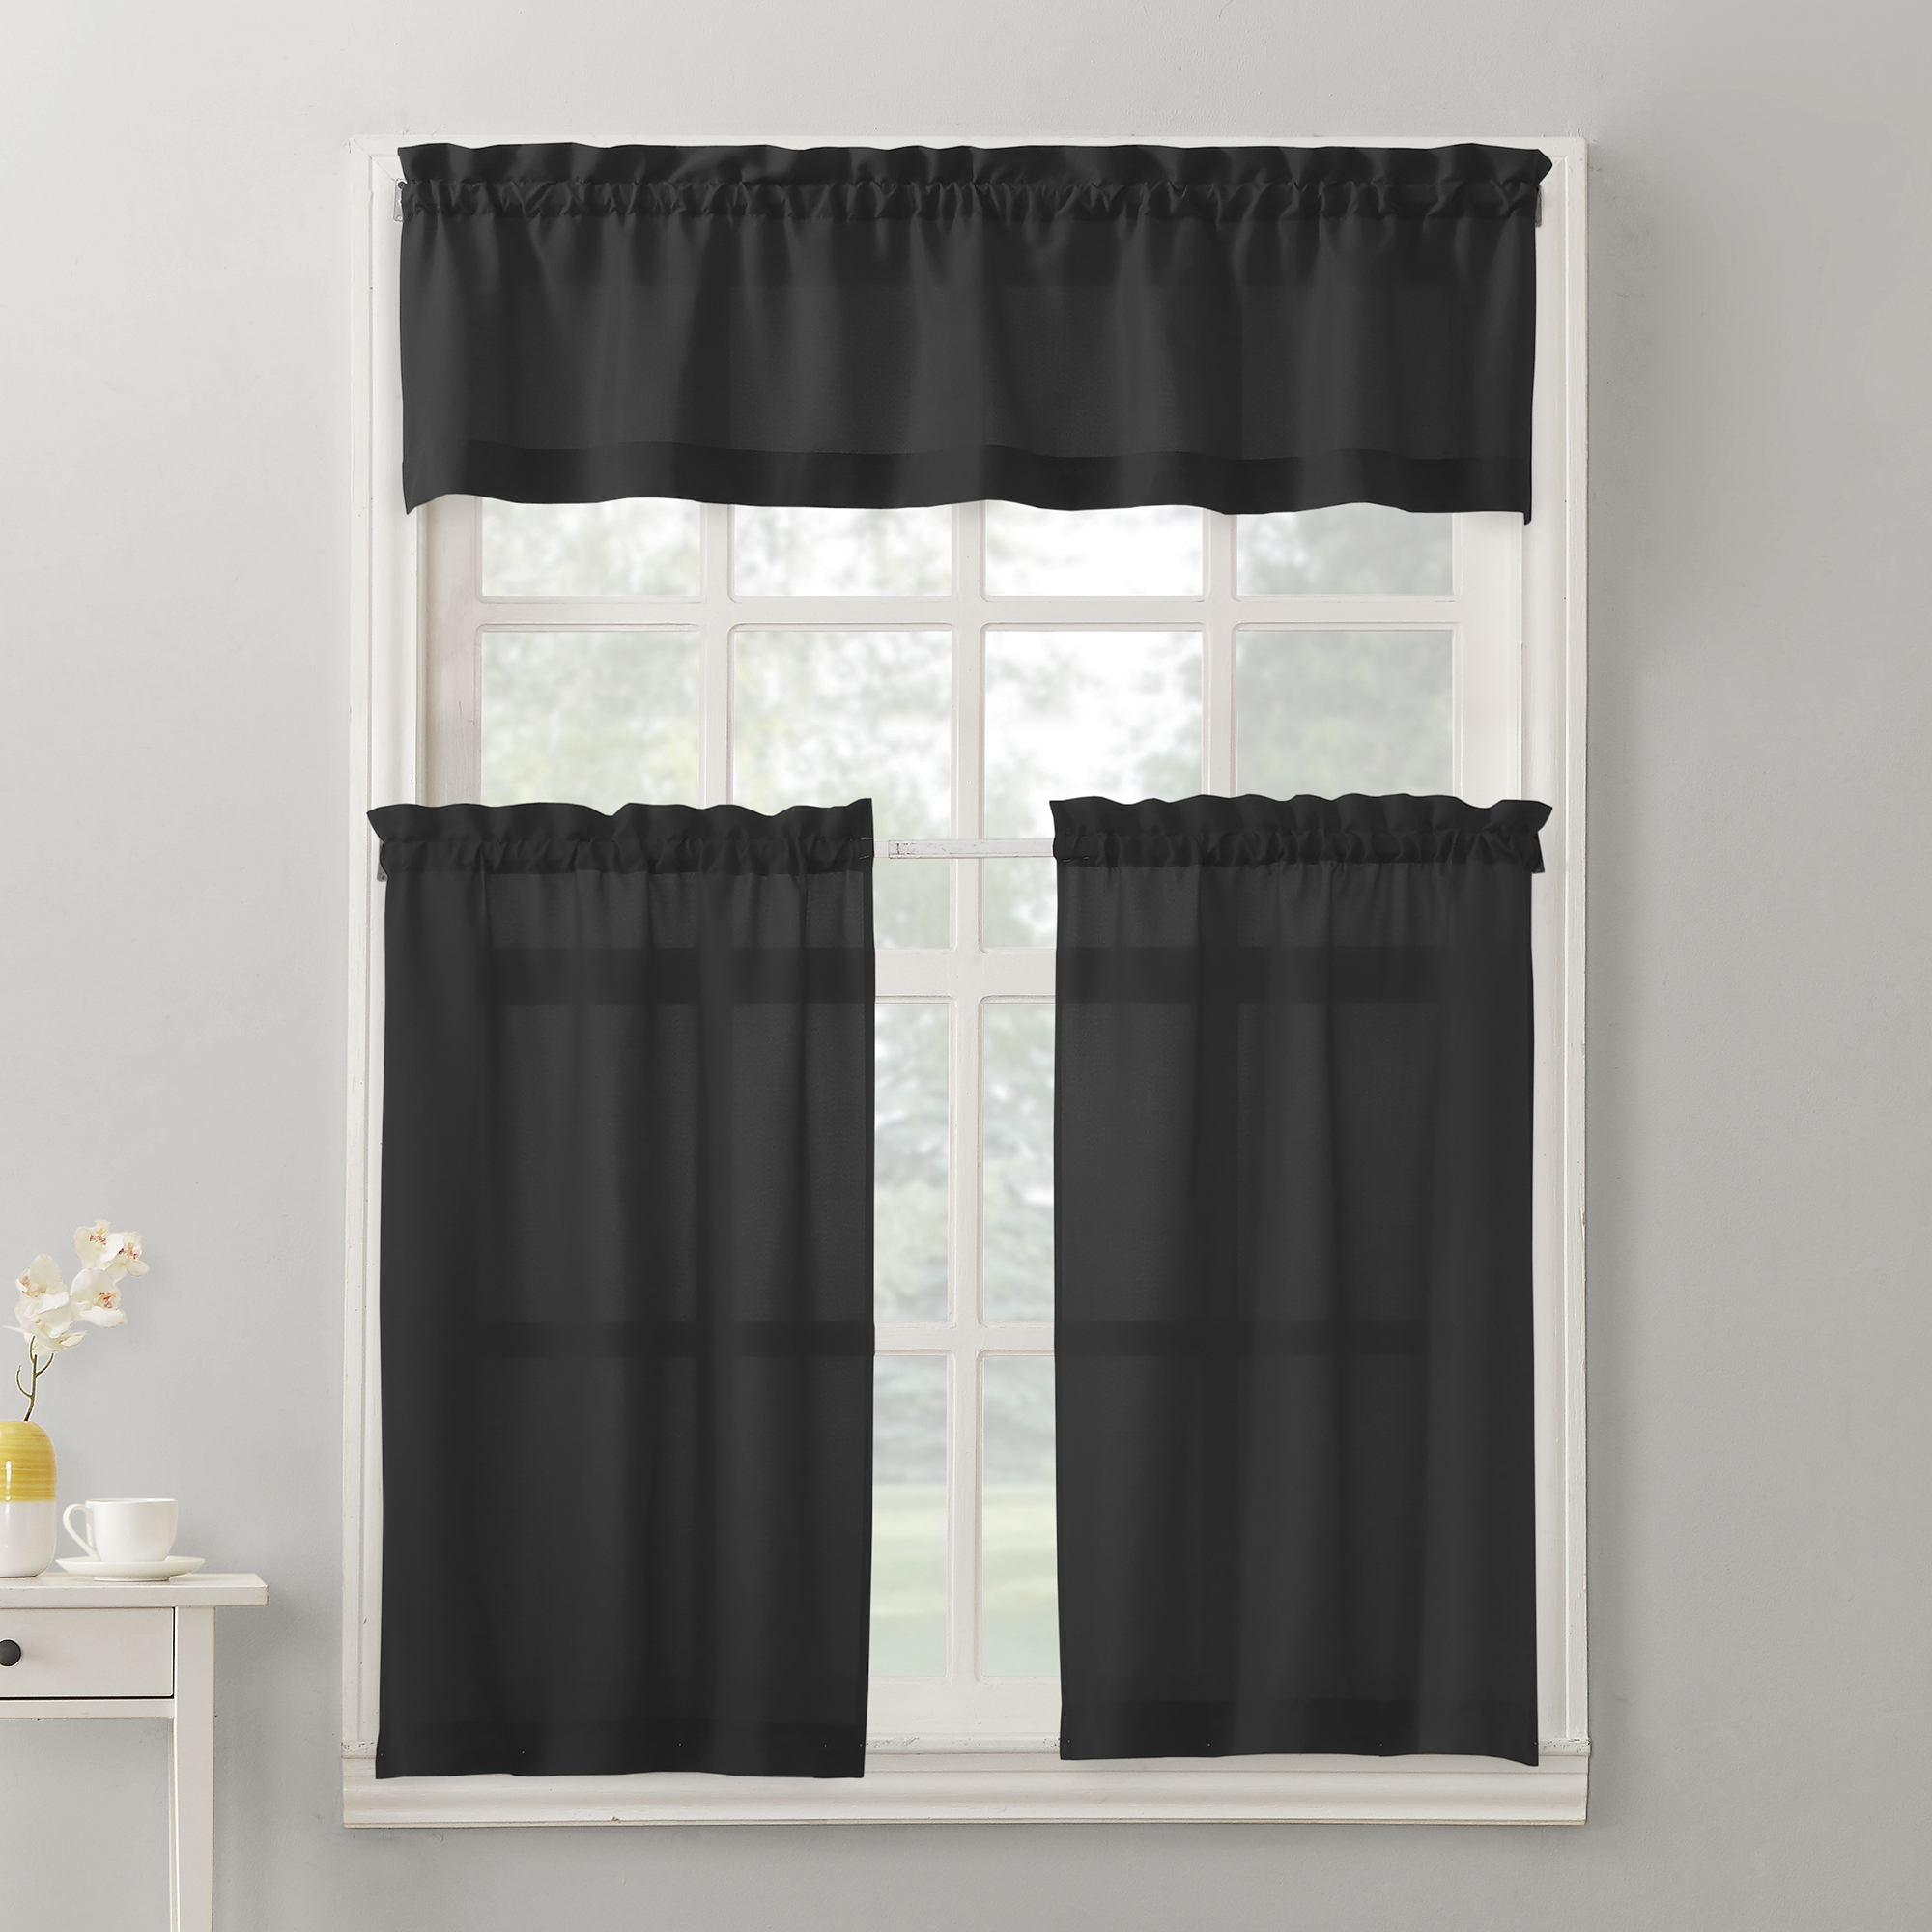 Mainstays Solid 3 Piece Kitchen Curtain Tier And Valance Set Throughout 2020 Grey Window Curtain Tier And Valance Sets (View 5 of 20)